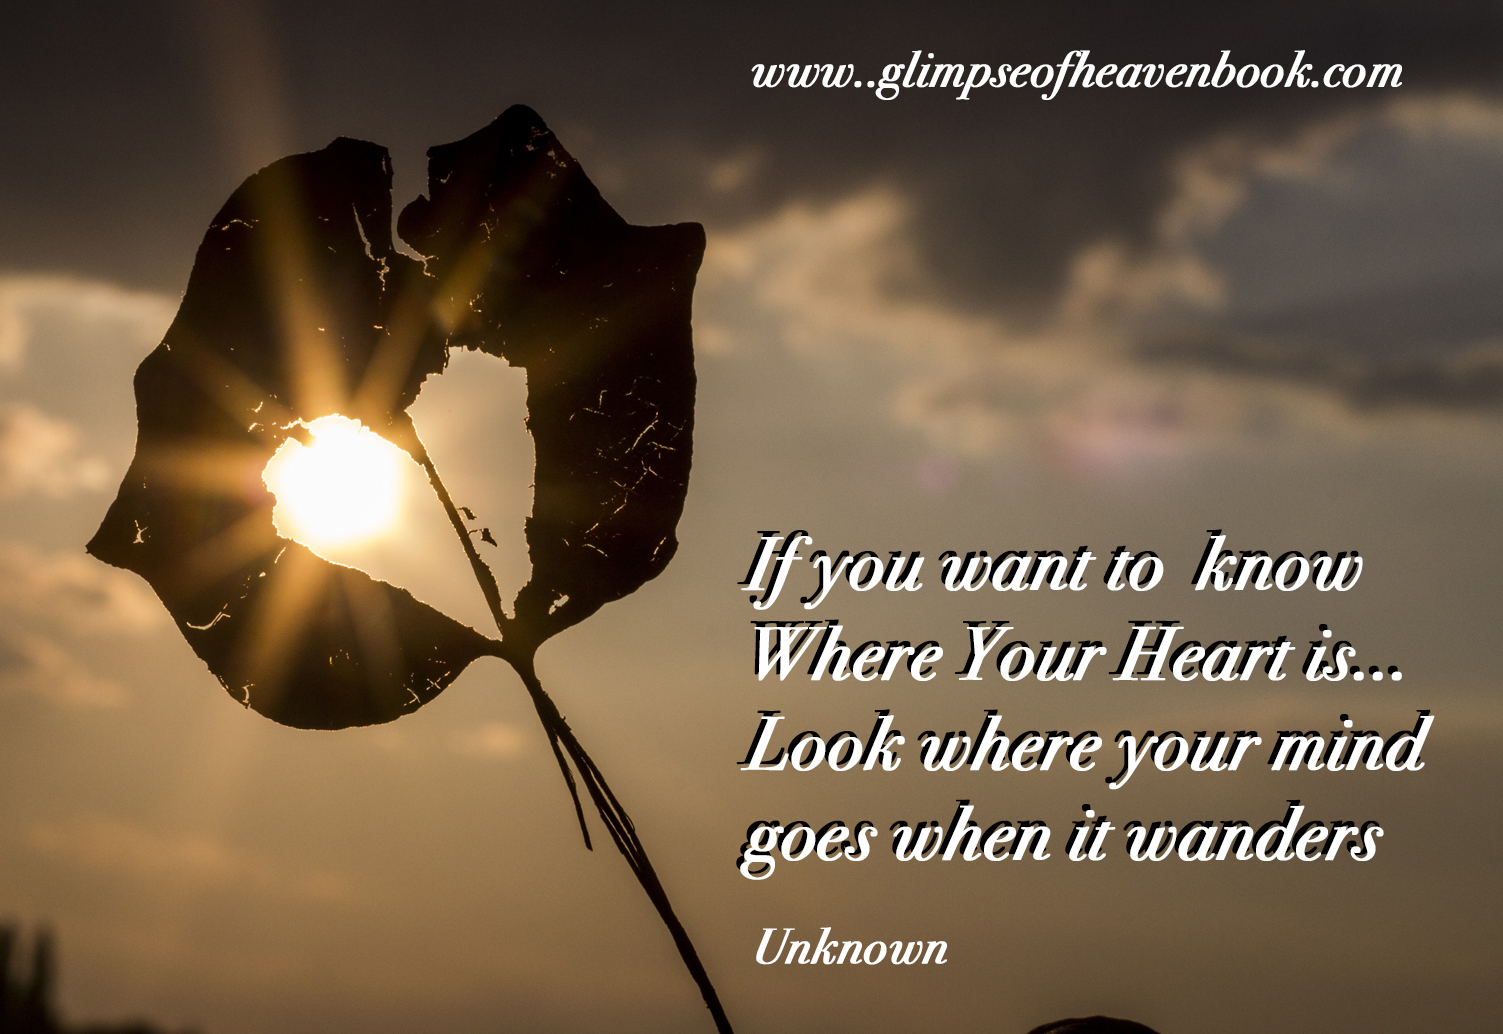 If You Want To Know Where Your Heart Is Look Where Your: If-you-want-to-know-where-your-heart-us-sun-622740